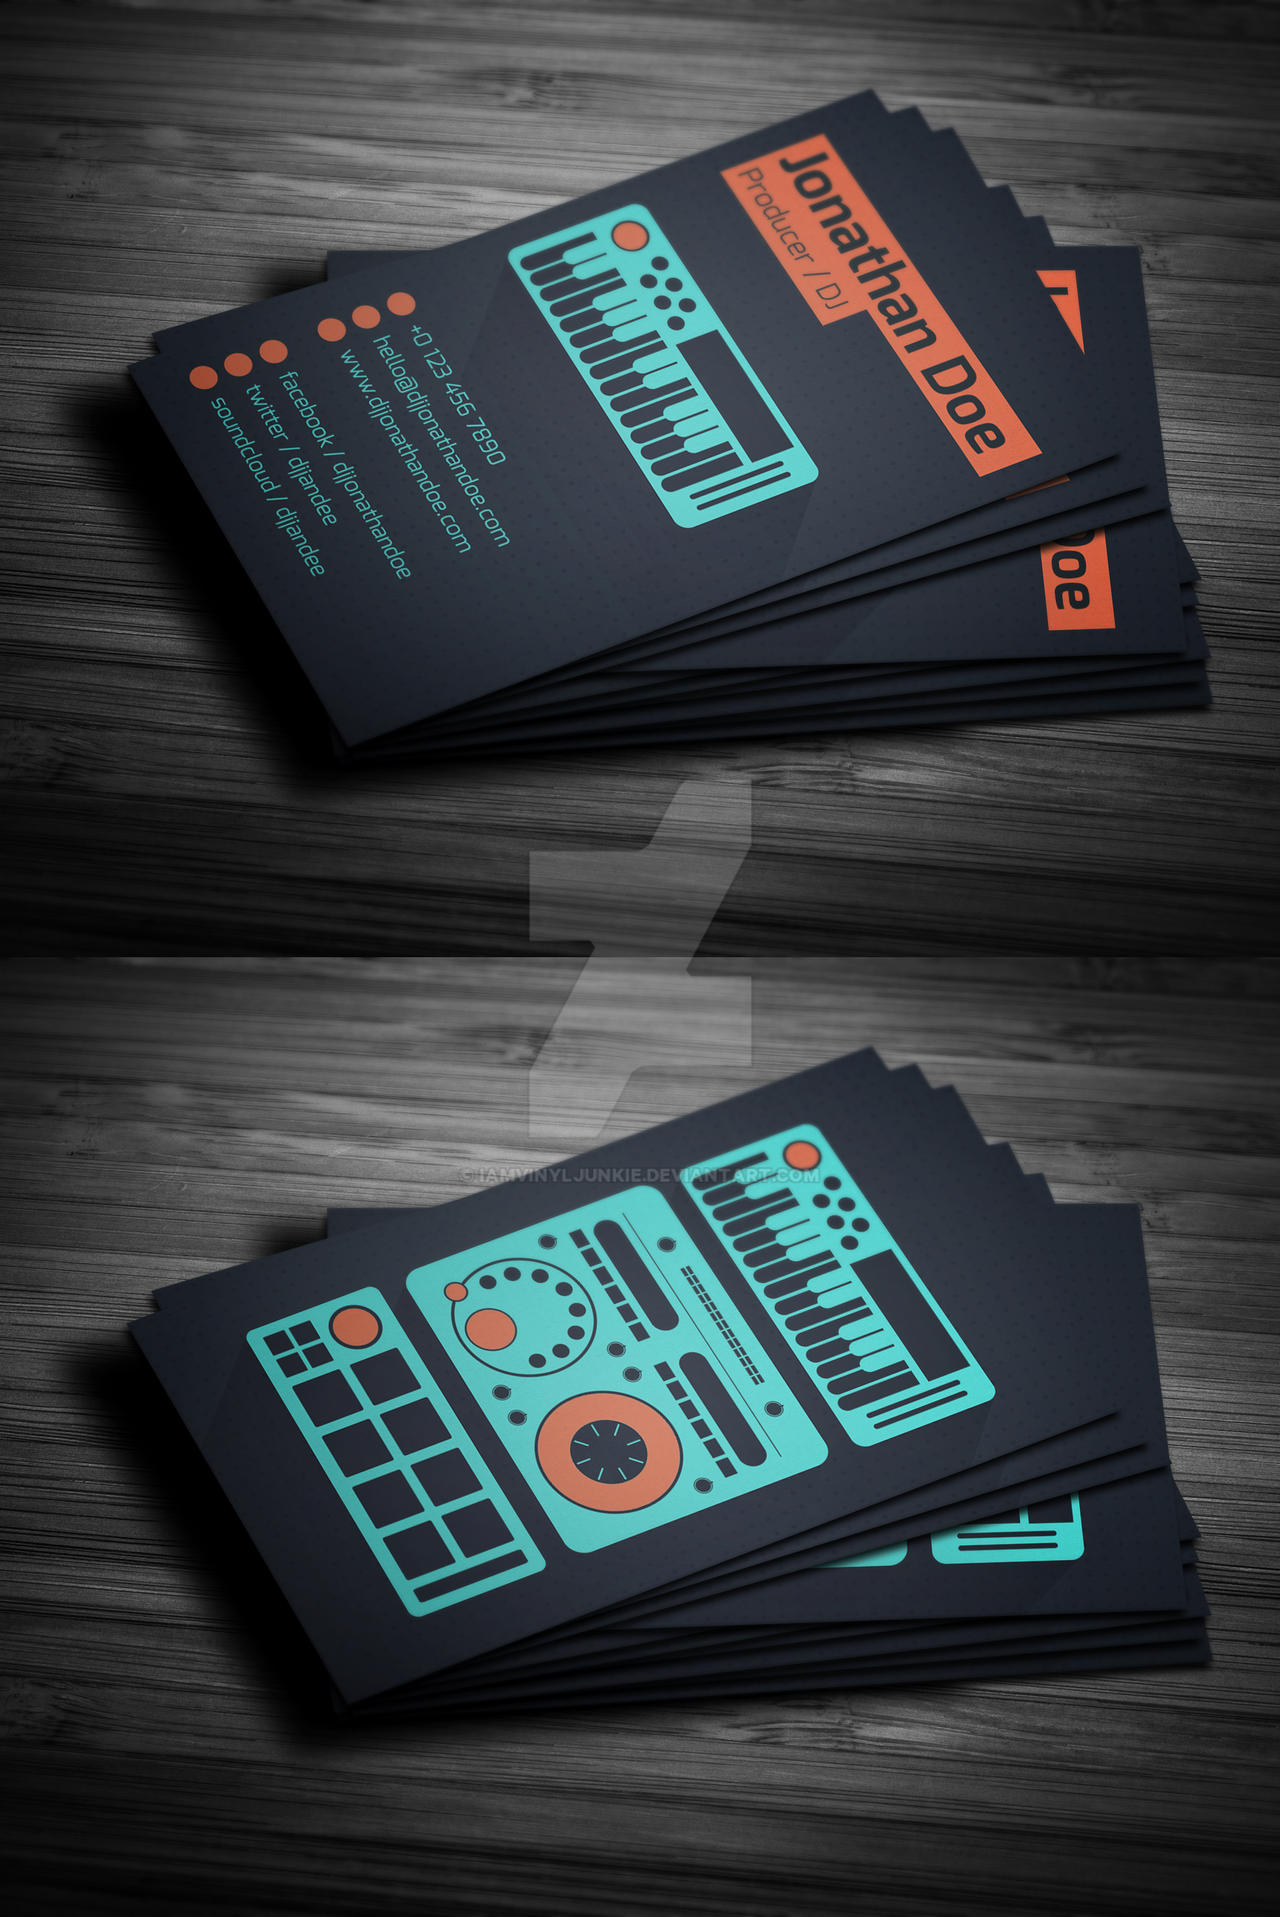 Flat producer dj business card psd template by iamvinyljunkie on flat producer dj business card psd template by iamvinyljunkie friedricerecipe